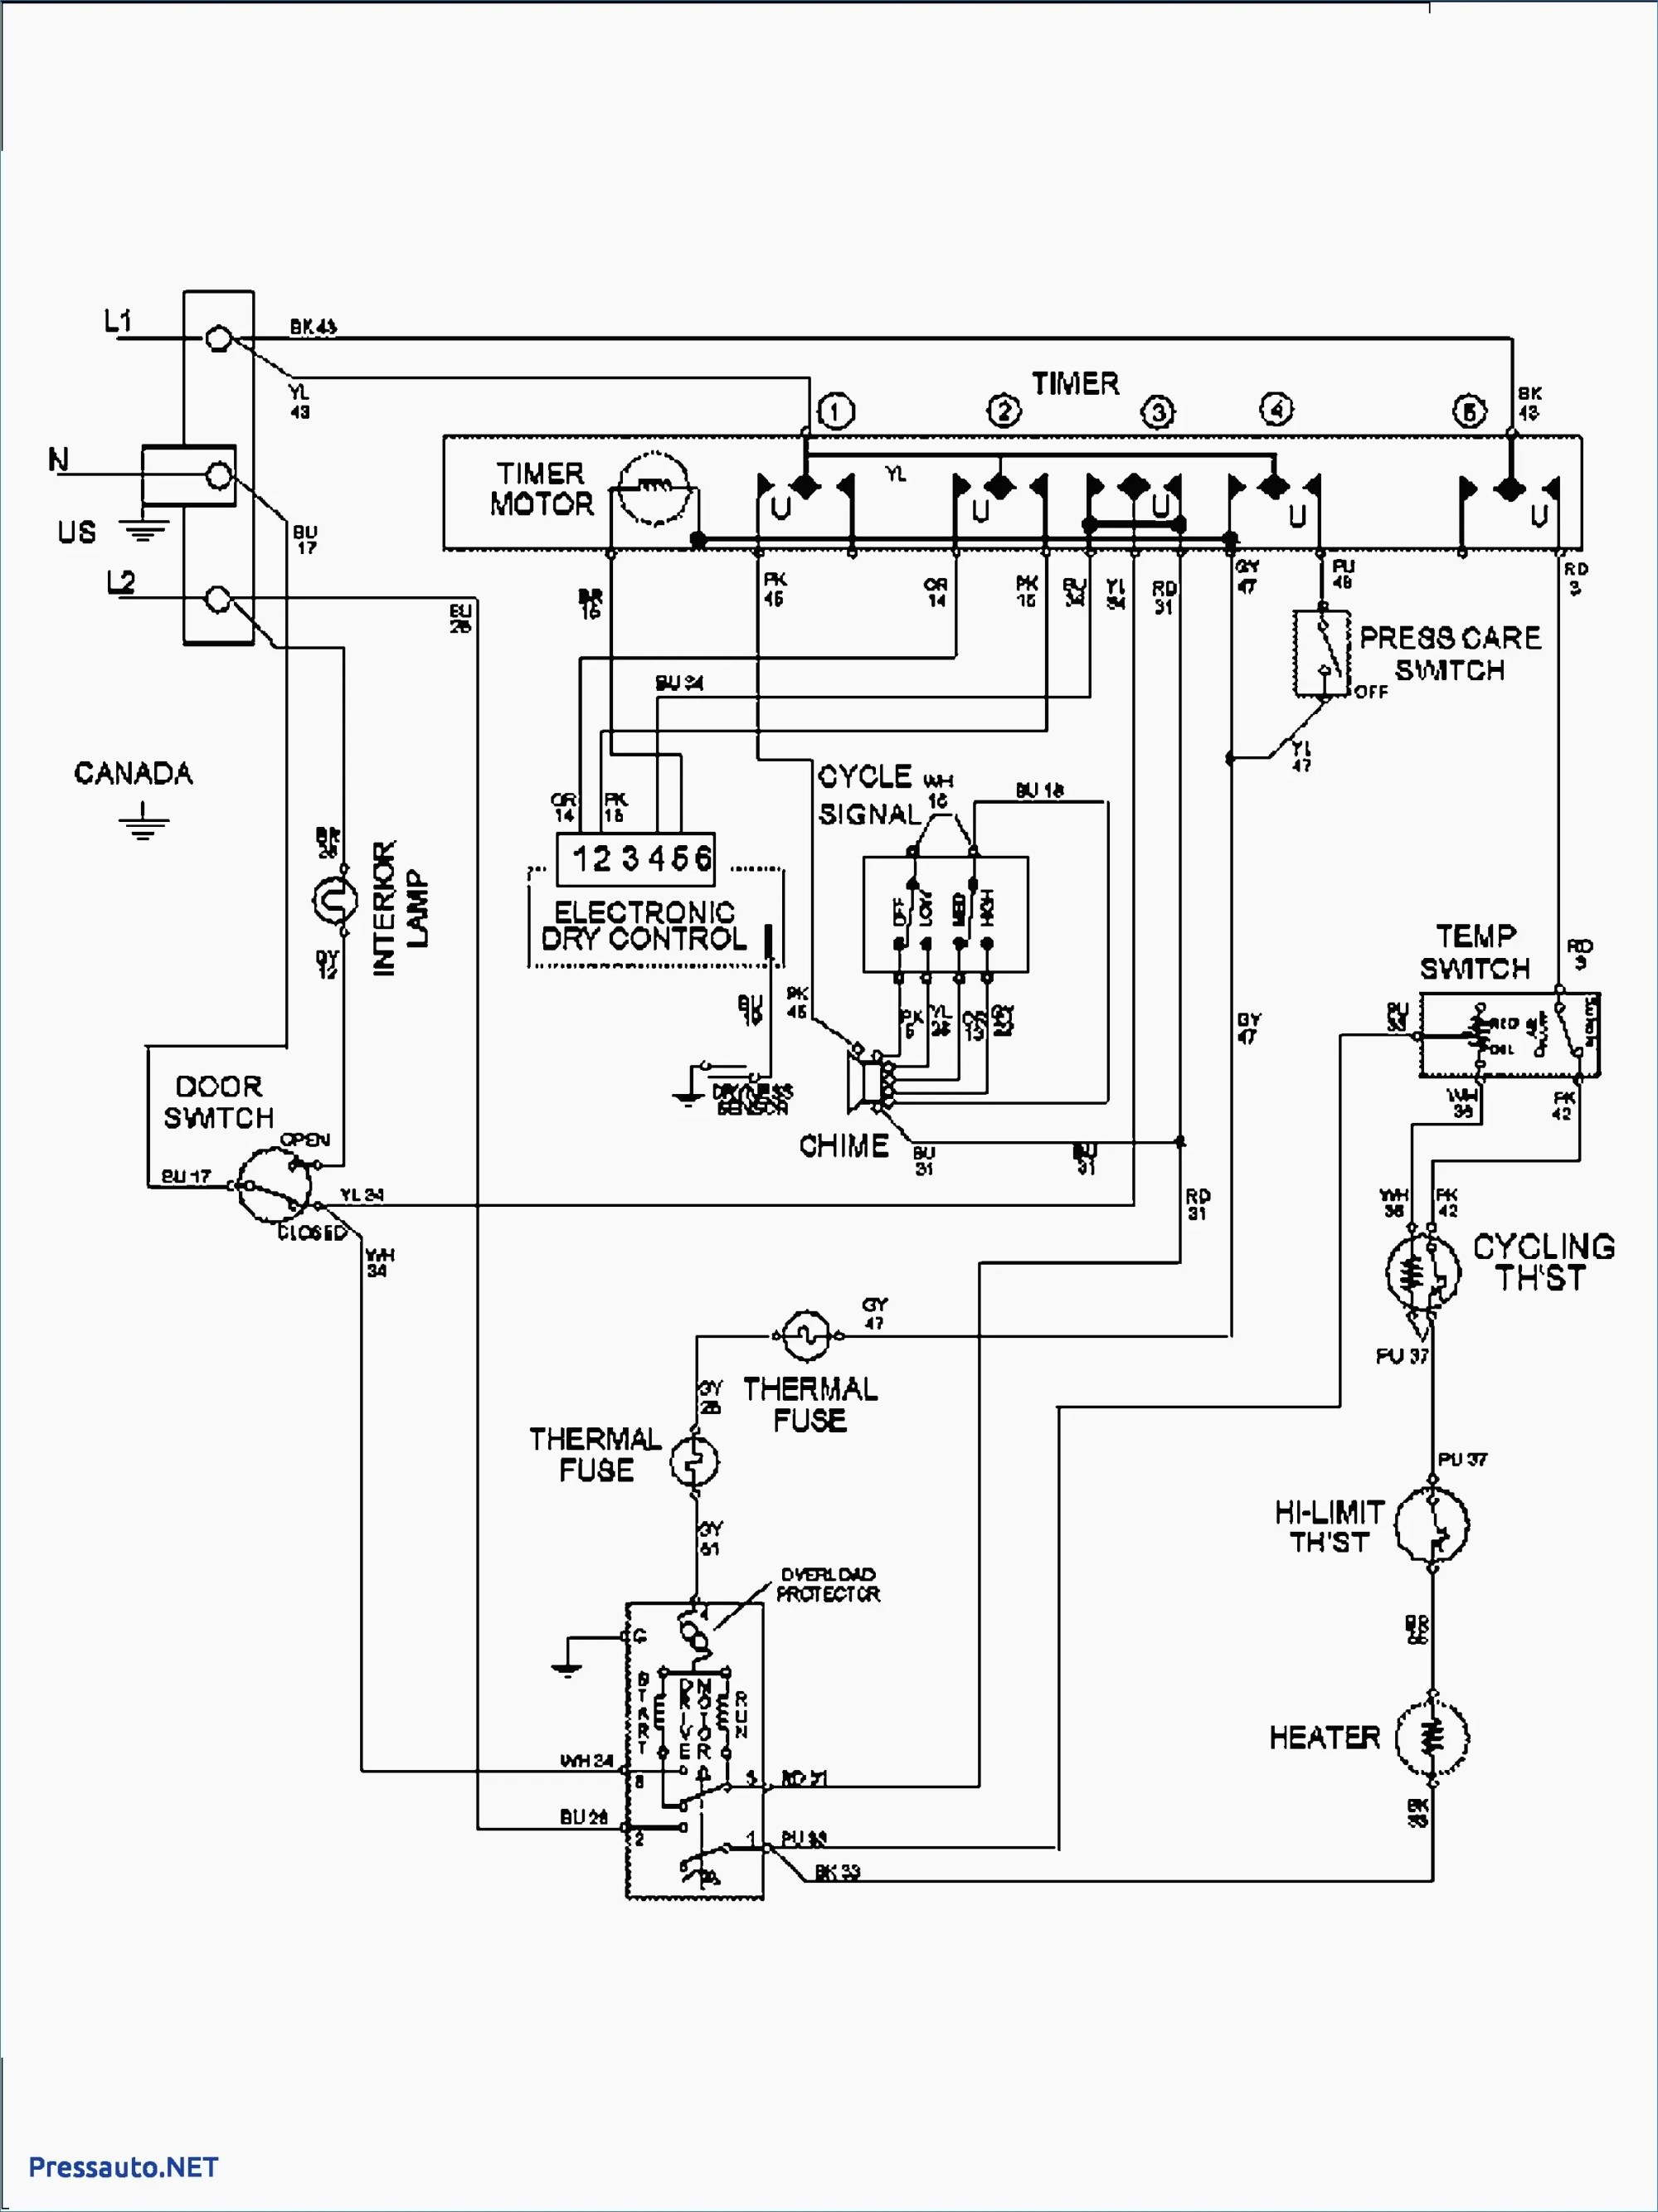 hight resolution of roper wiring diagram wiring diagrams roper dryer red4440vq1 wiring diagram roper wiring diagram